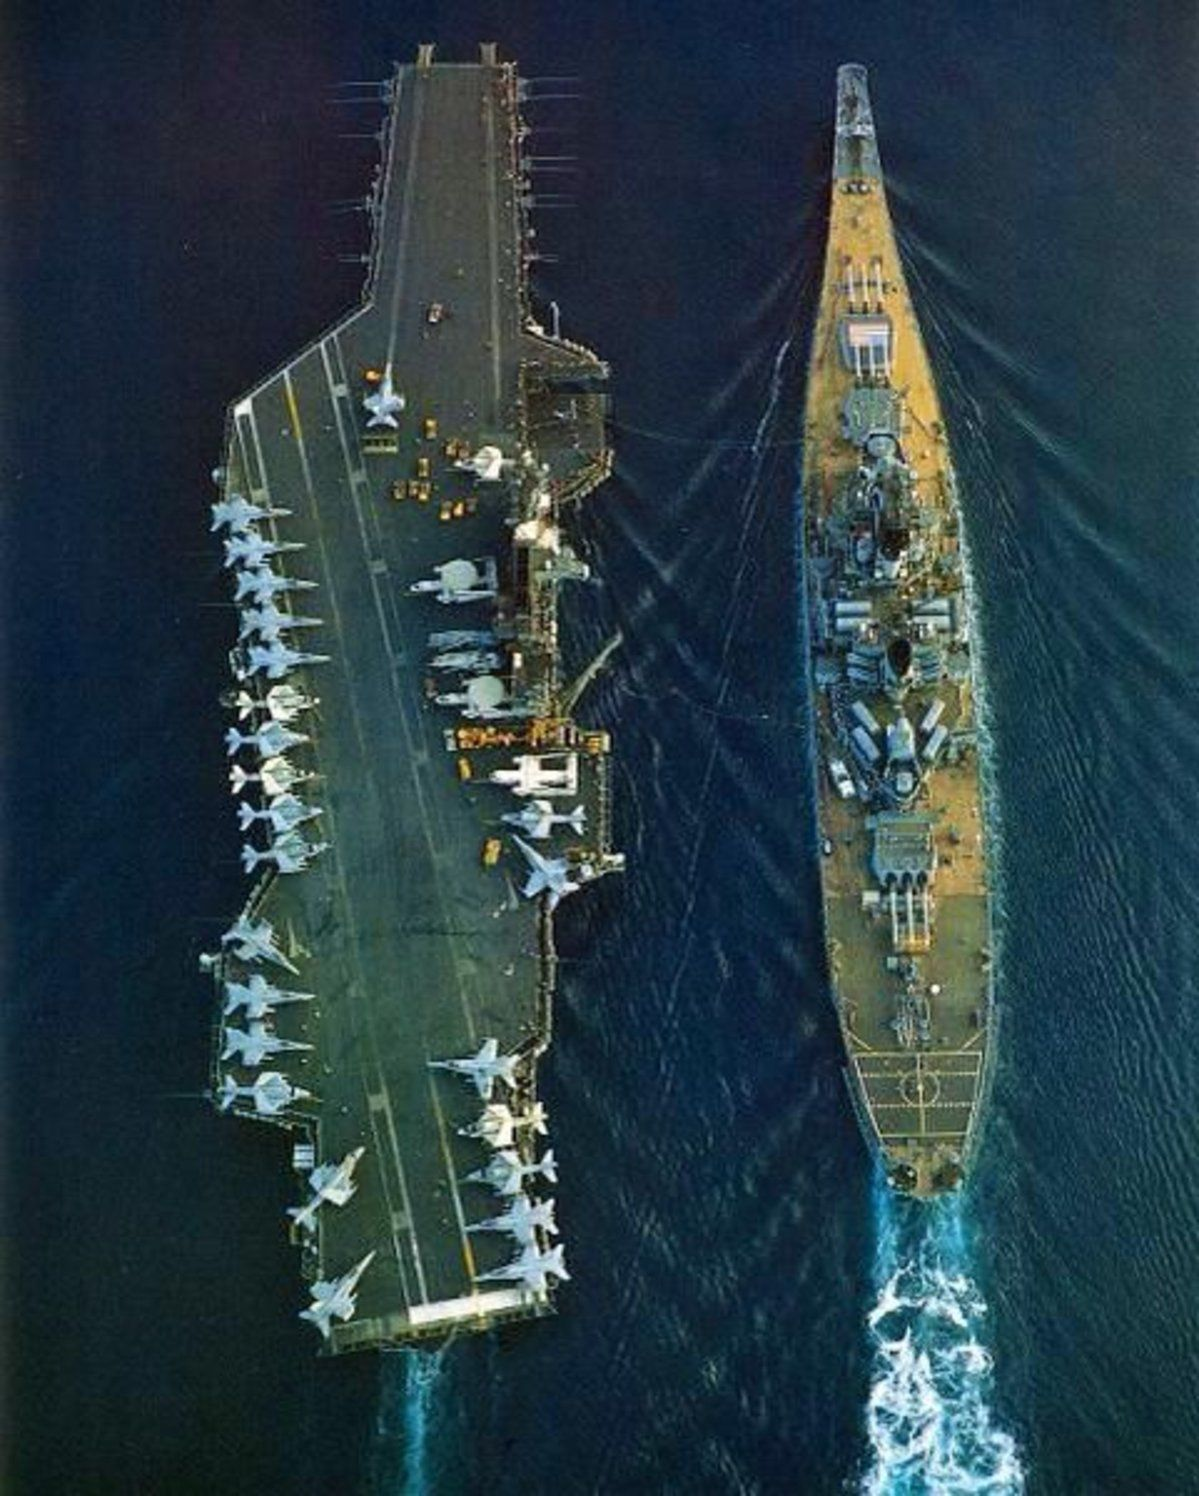 Uss Midway Uss Iowa In Vietnam Navy Aircraft Carrier Battleship Us Navy Ships